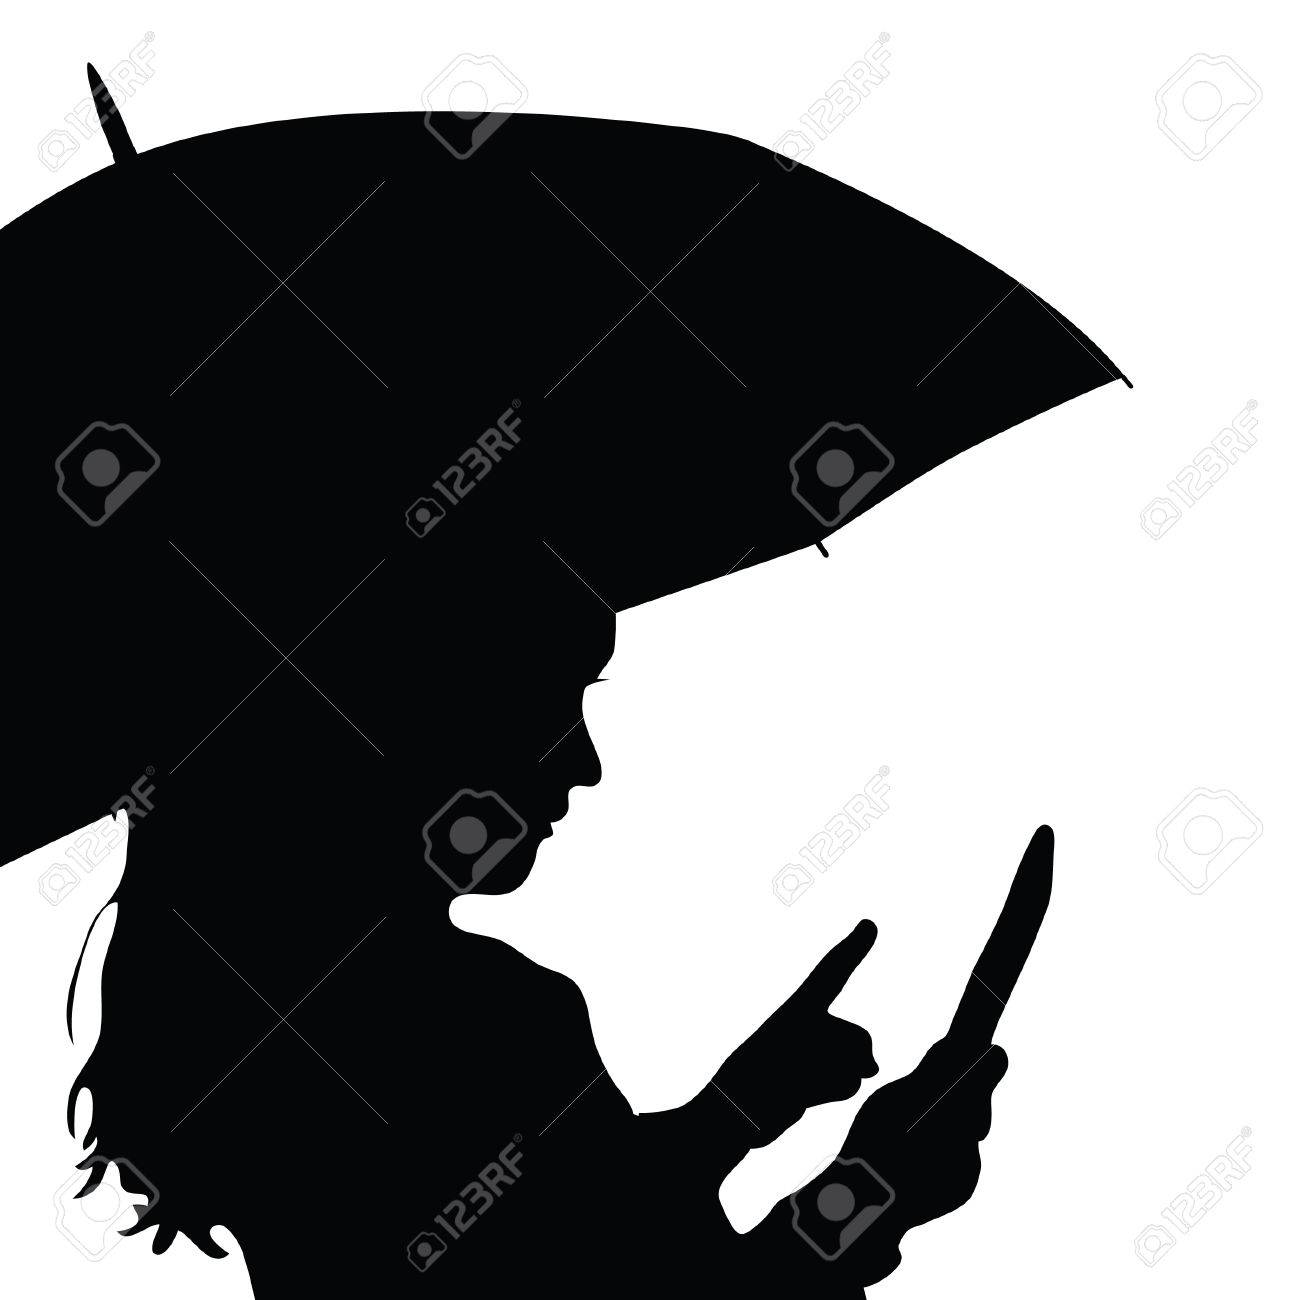 child with umbrella silhouette illustration in black royalty free